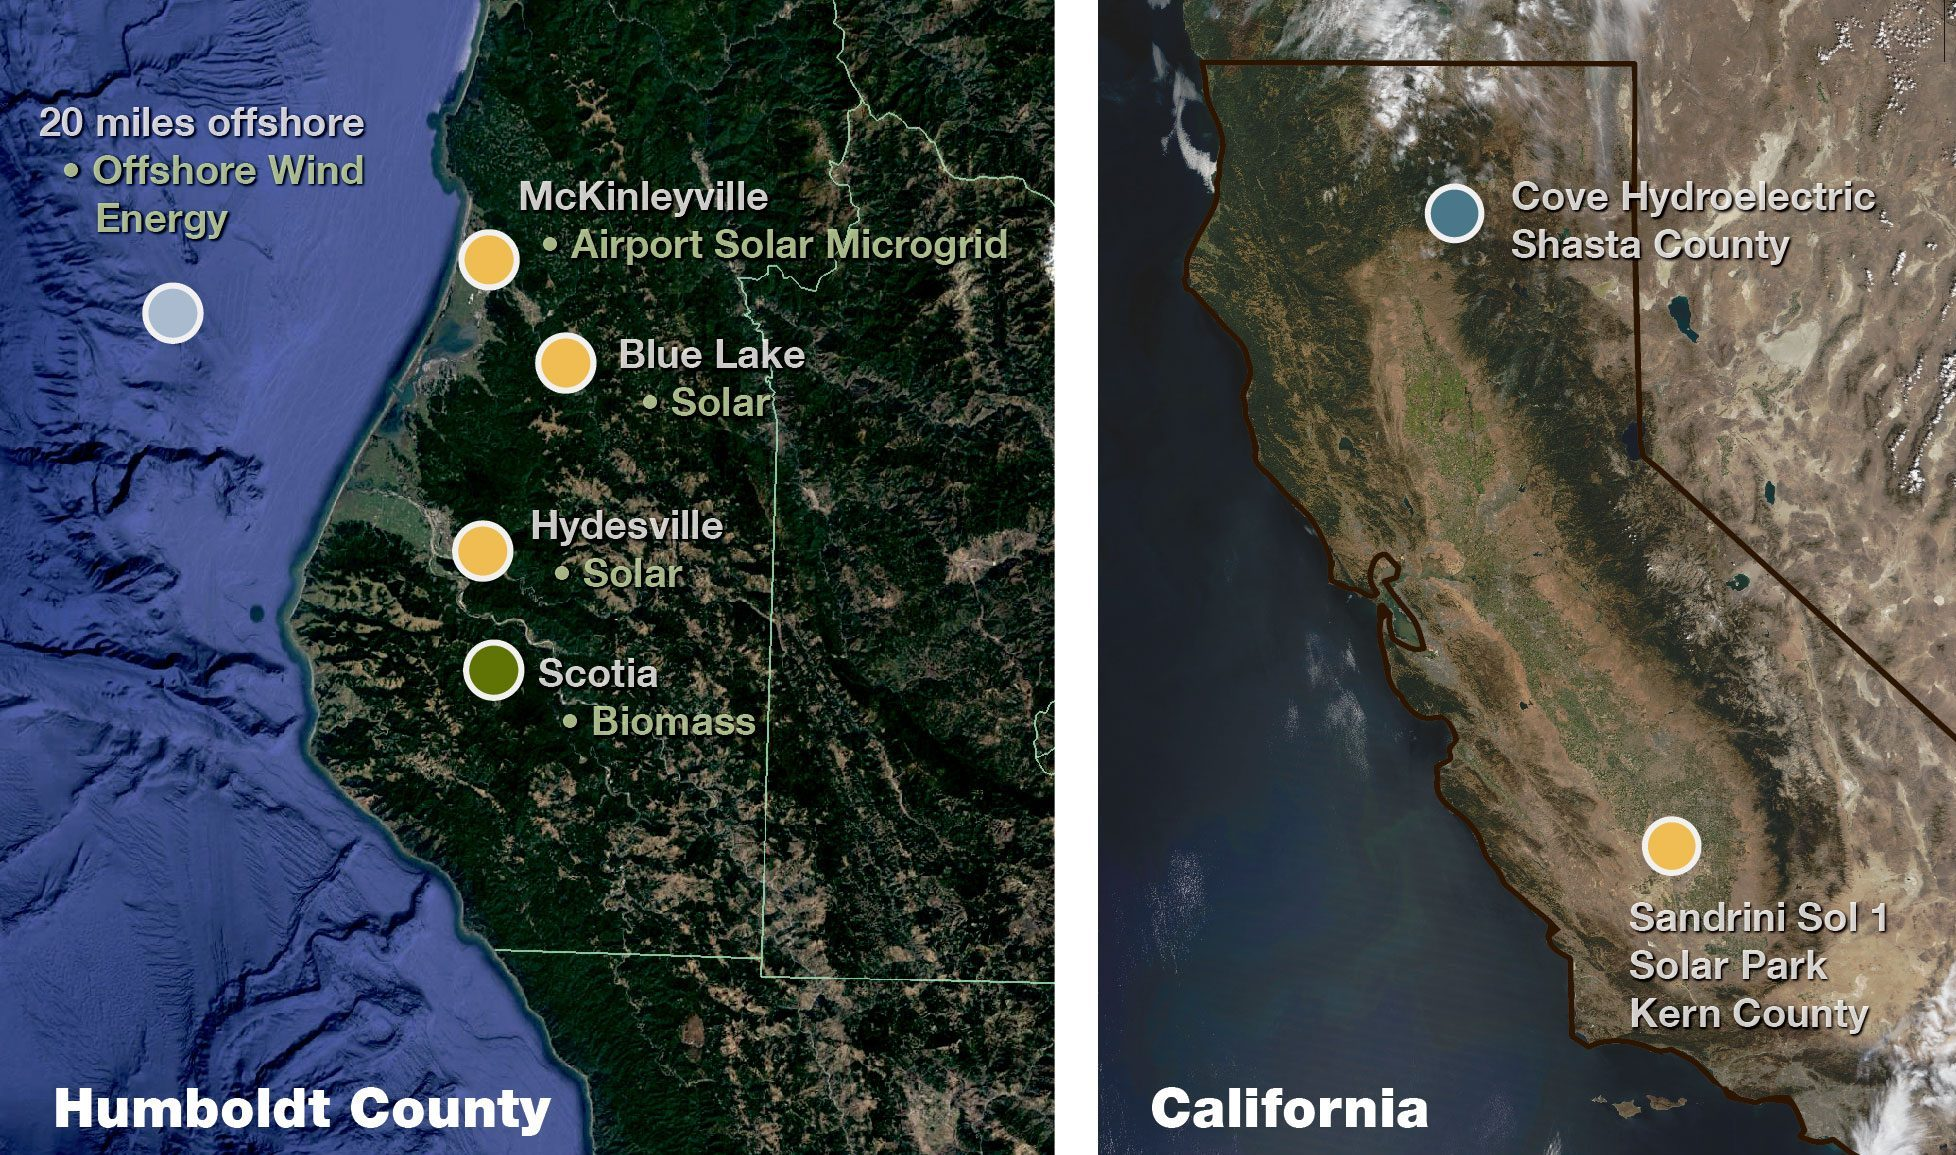 map of the places RCEA sources energy from in Humboldt and California